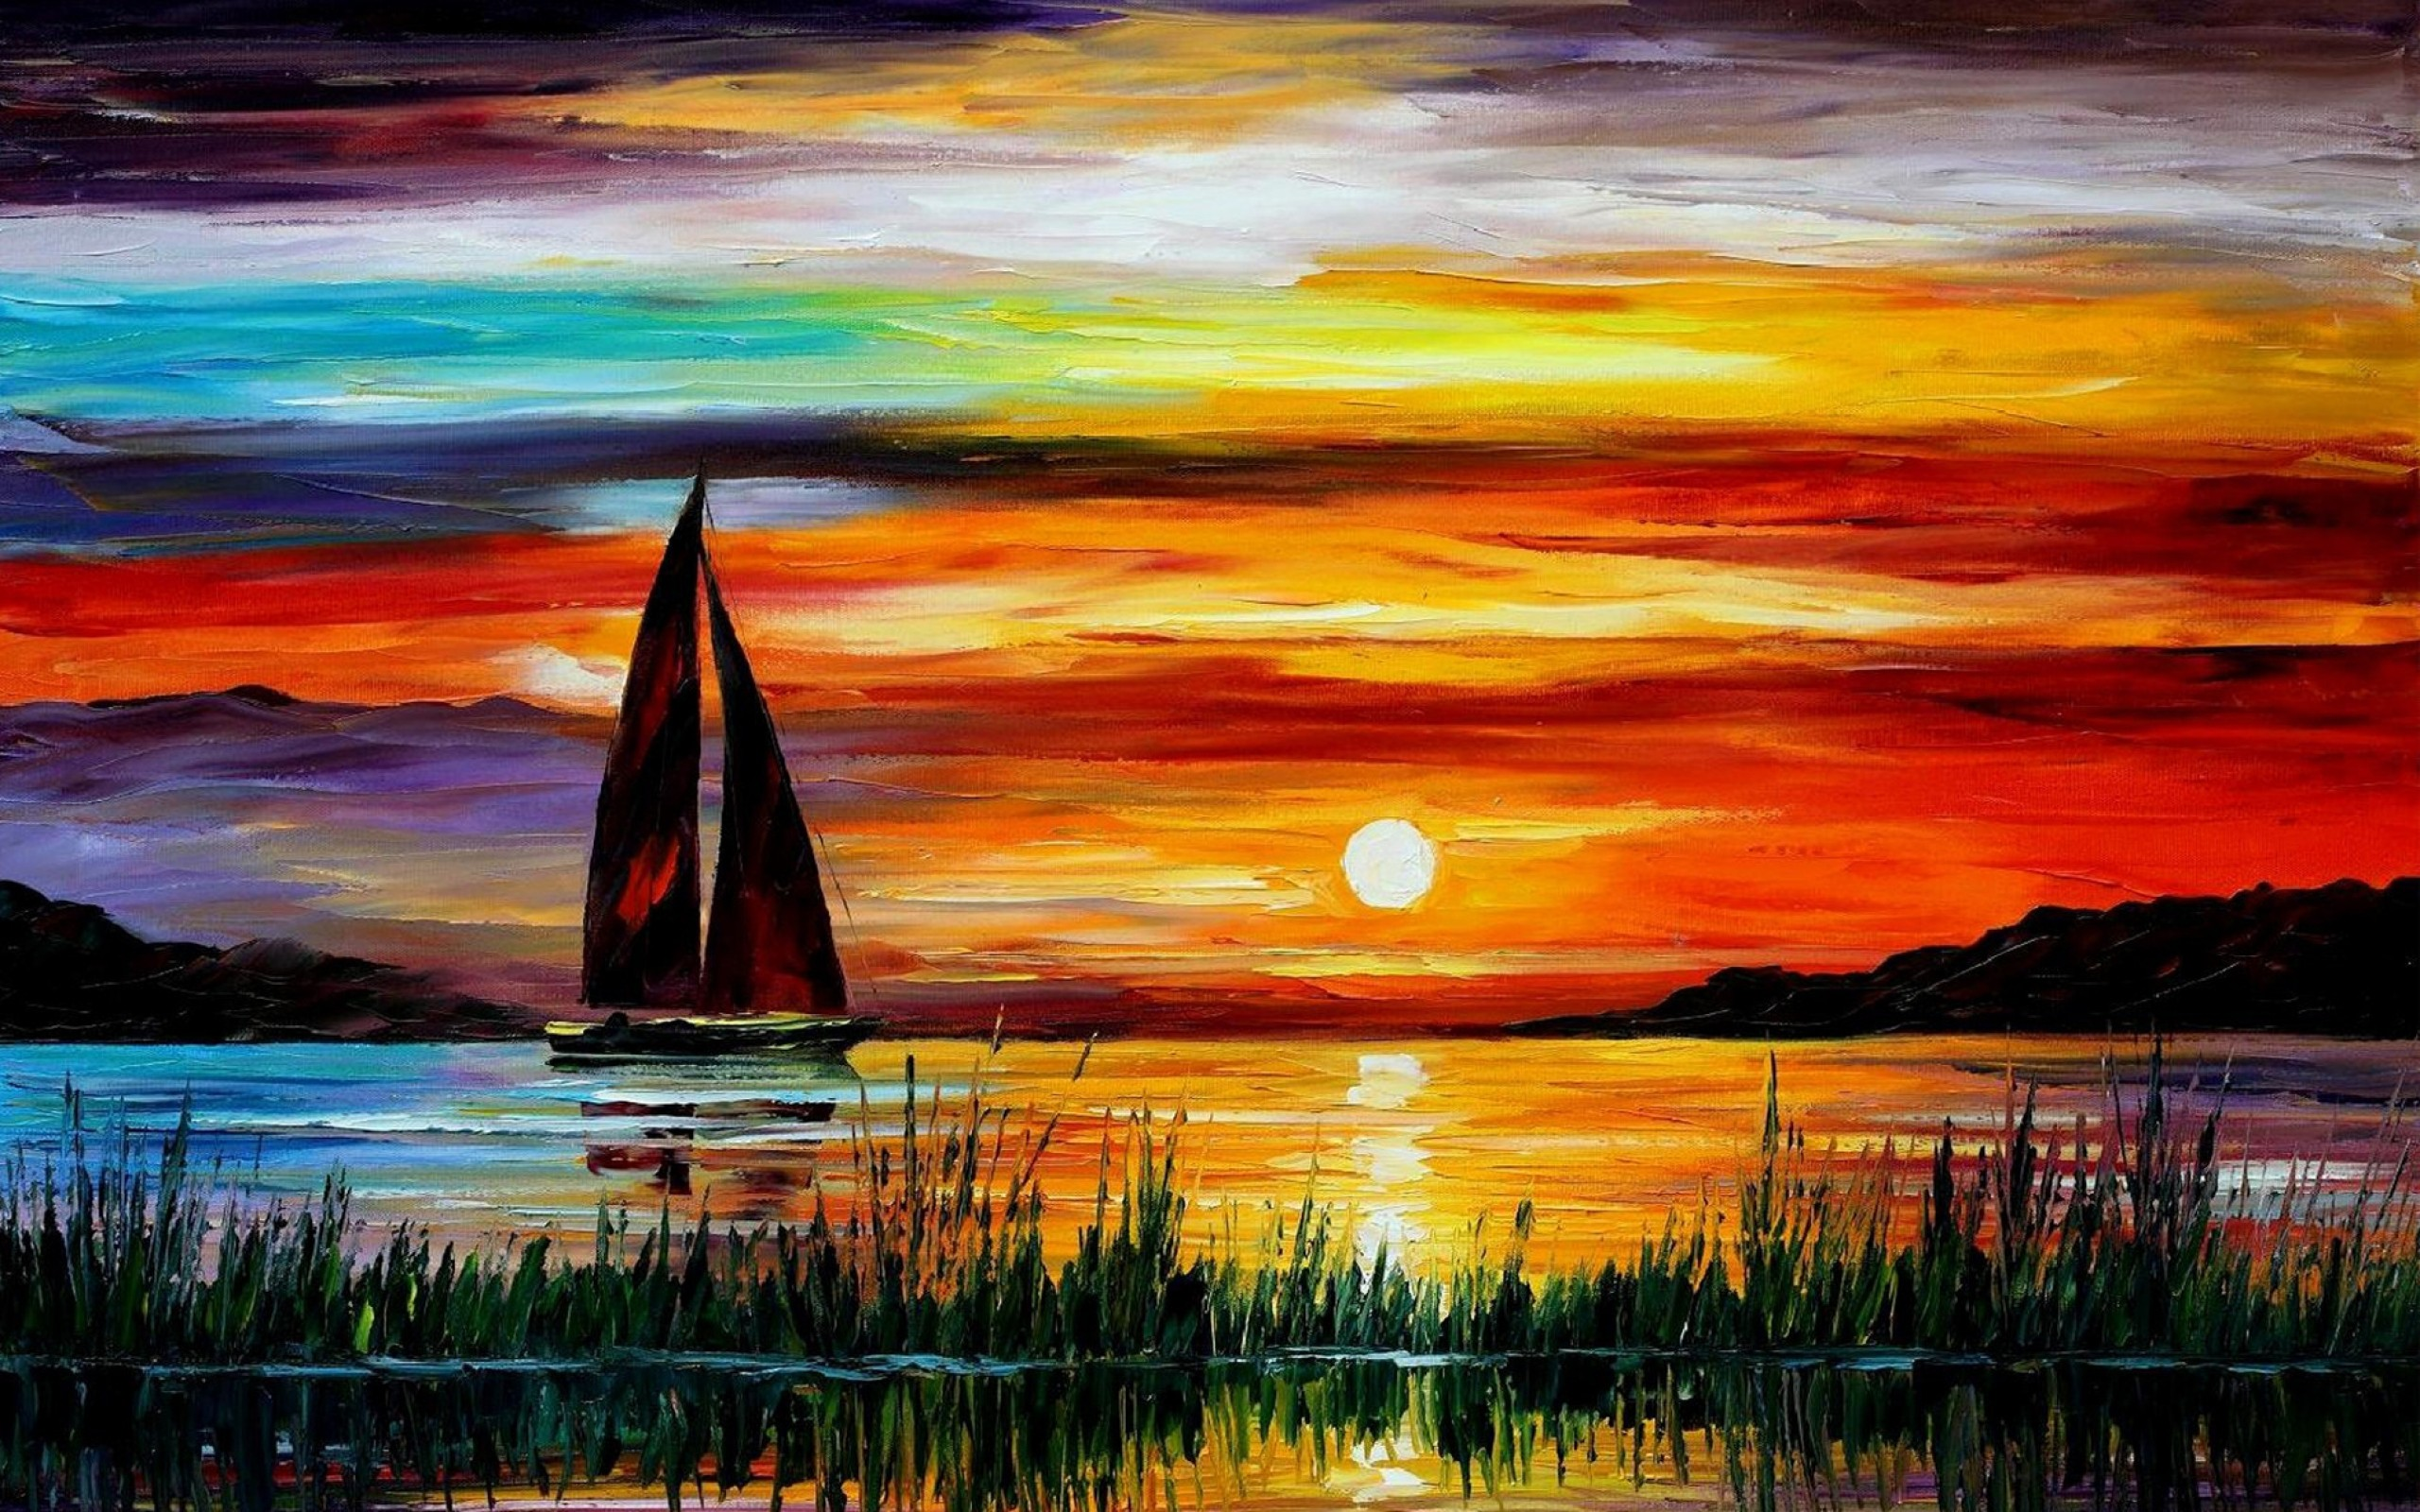 Awesome-Sunset-Boat-Sea-Paintings-and-HD-Desktop-Images-For-4k-1080p-Widescreen-Resolu-wallpaper-wp3602868